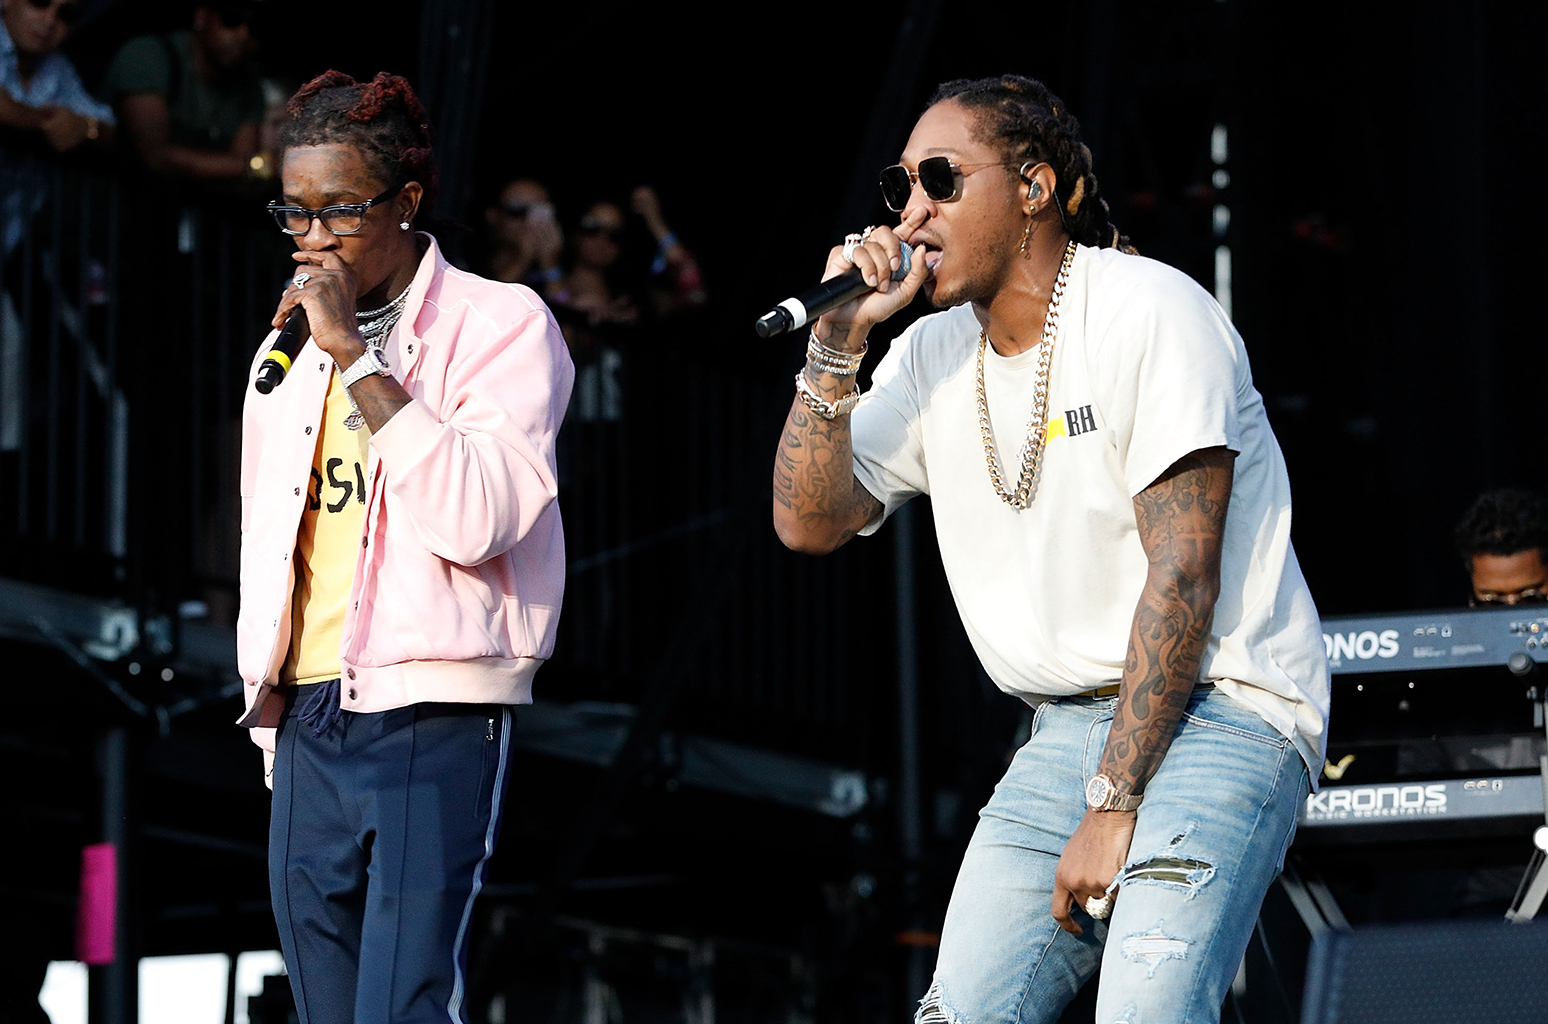 NEW YORK, NY - SEPTEMBER 16: Young Thug (L) and Future perform onstage during Day 2 at The Meadows Music & Arts Festival at Citi Field on September 16, 2017 in New York City. (Photo by Taylor Hill/Getty Images for The Meadows Music & Arts Festival)